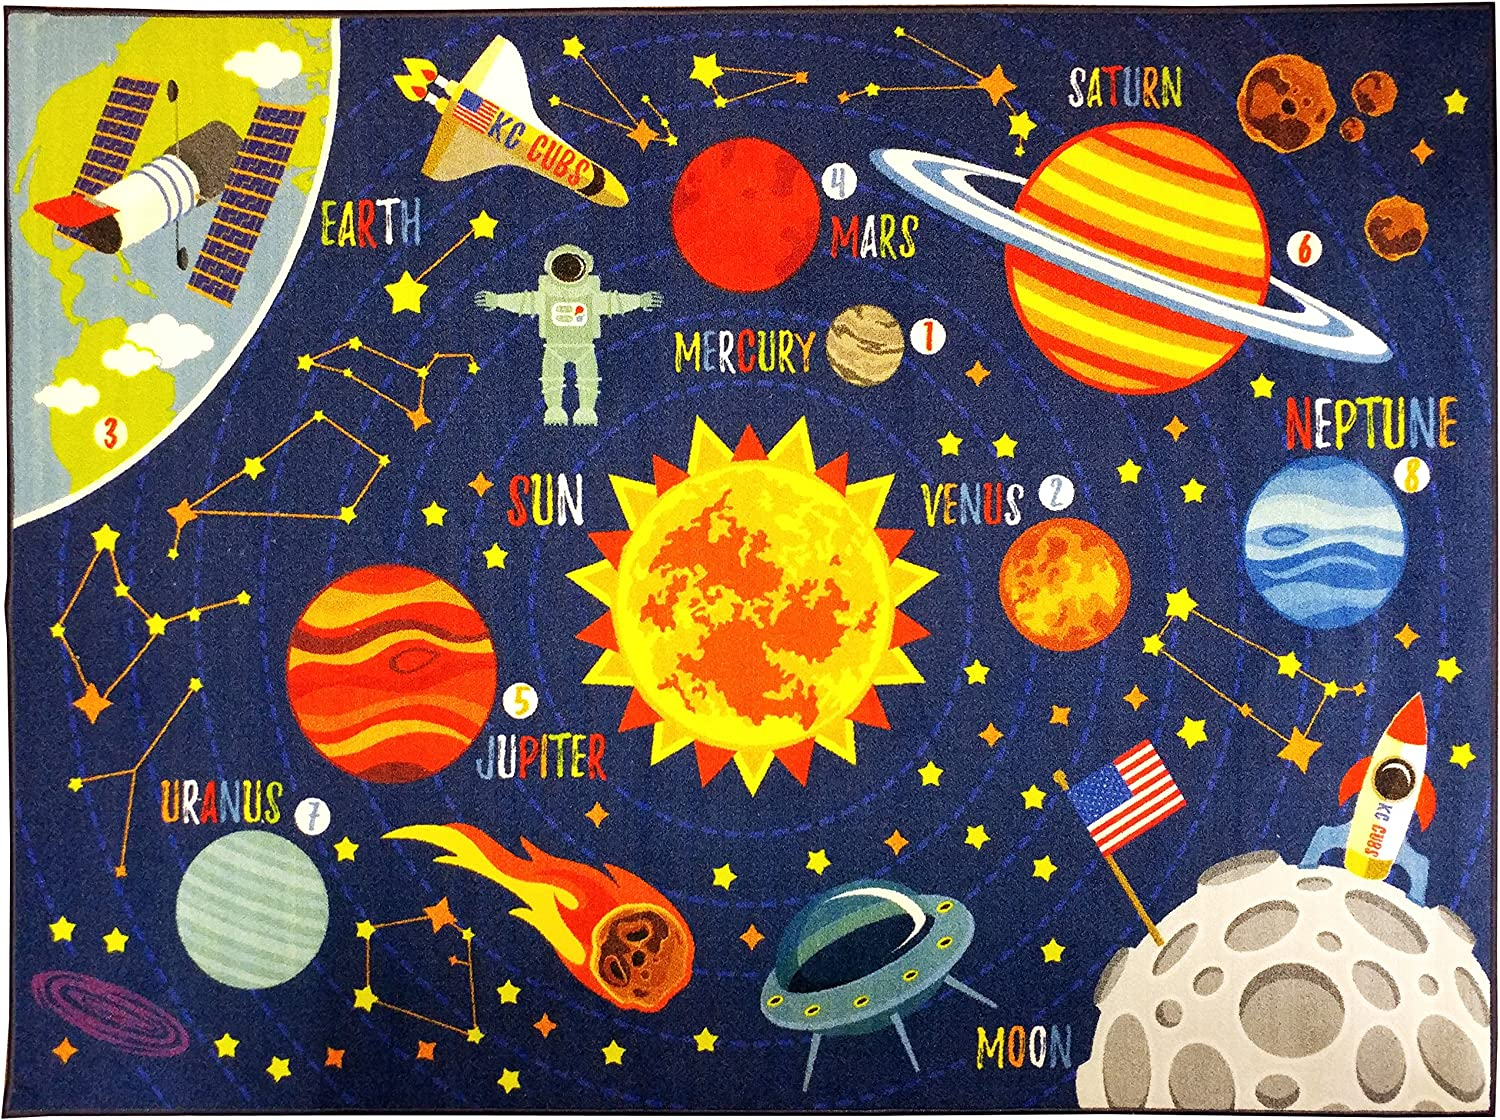 "KC Cubs Playtime Collection Space Safari Road Map Educational Learning & Game Area Rug Carpet for Kids and Children Bedrooms and Playroom (3' 3"" x 4' 7"")"